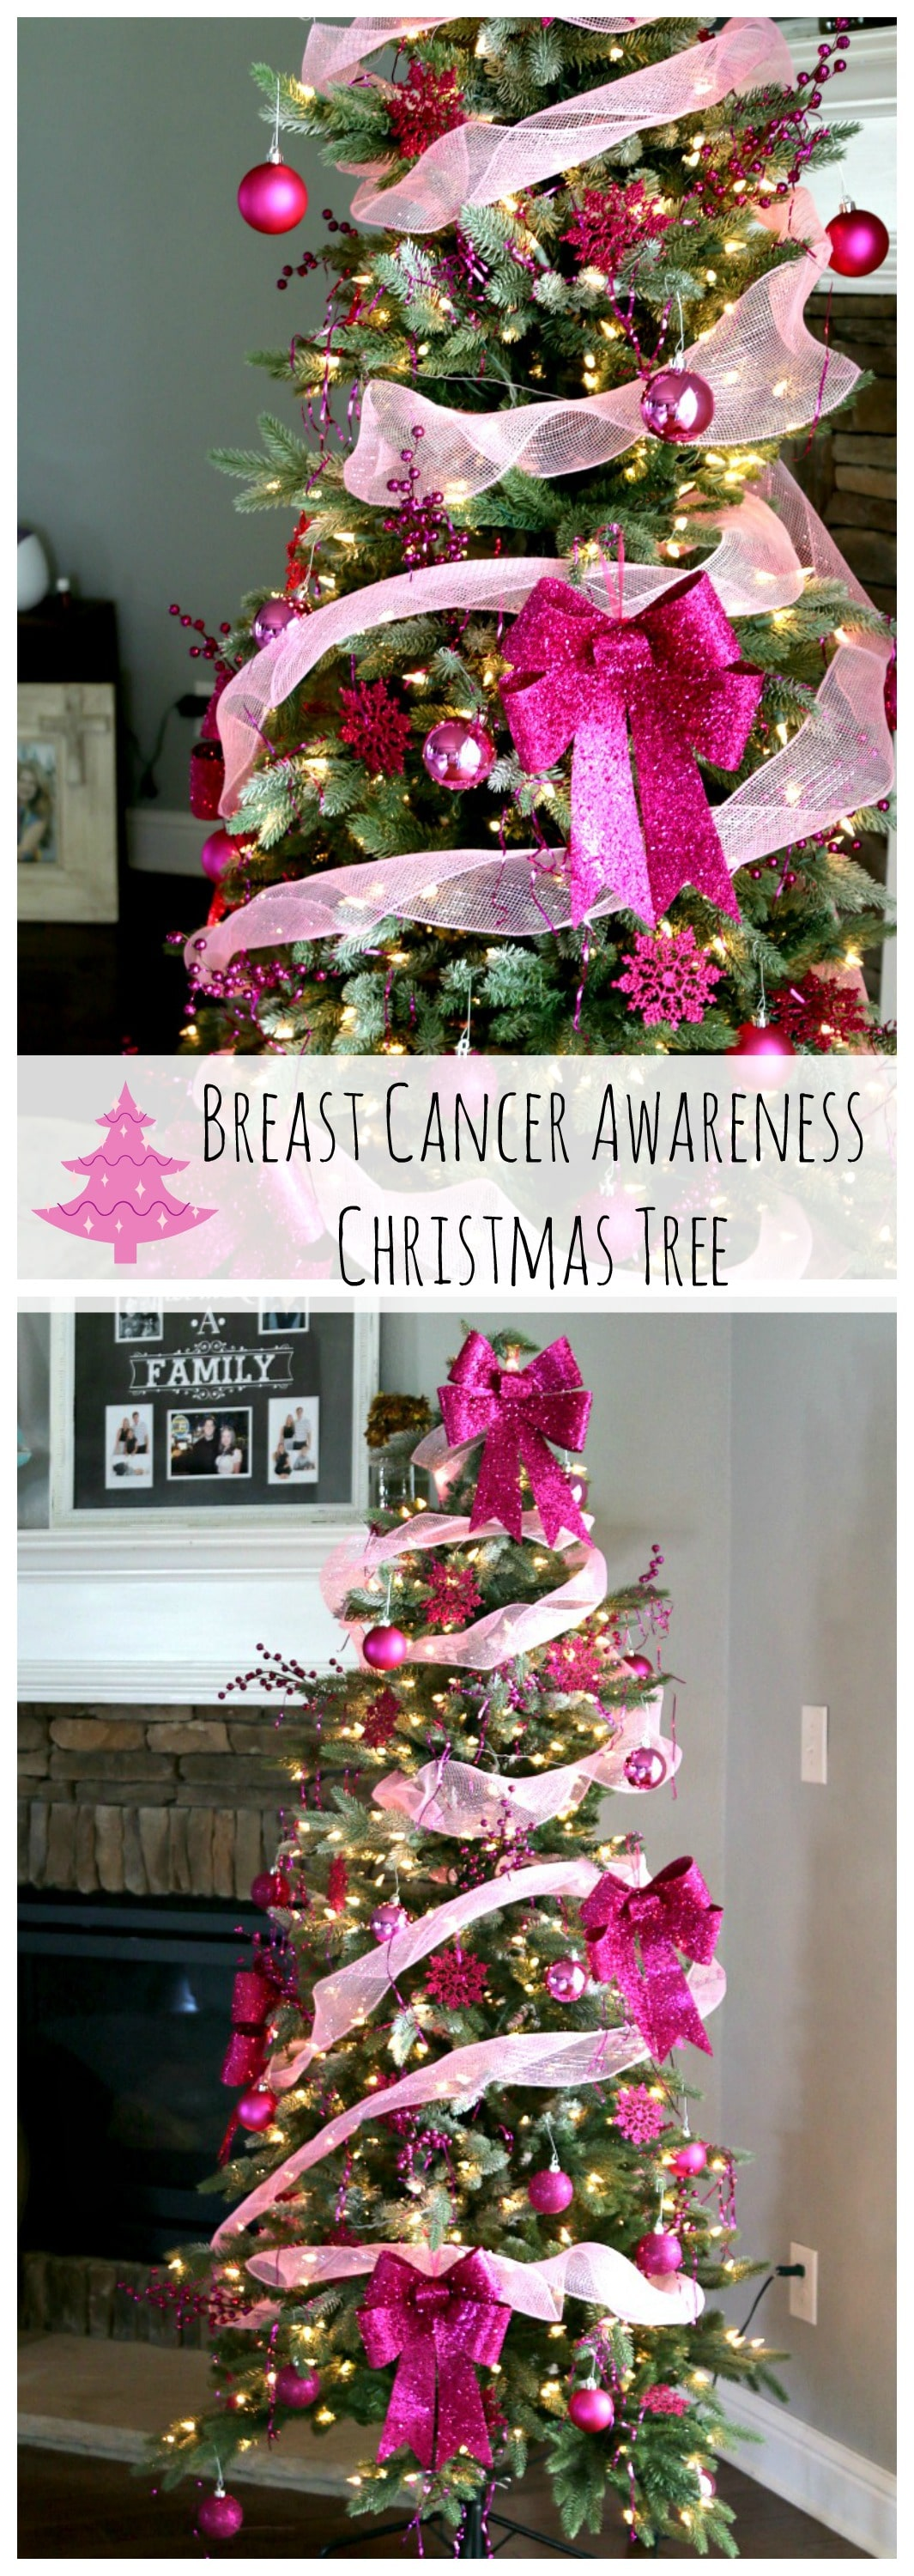 Breast Cancer Awareness Christmas Tree decorations